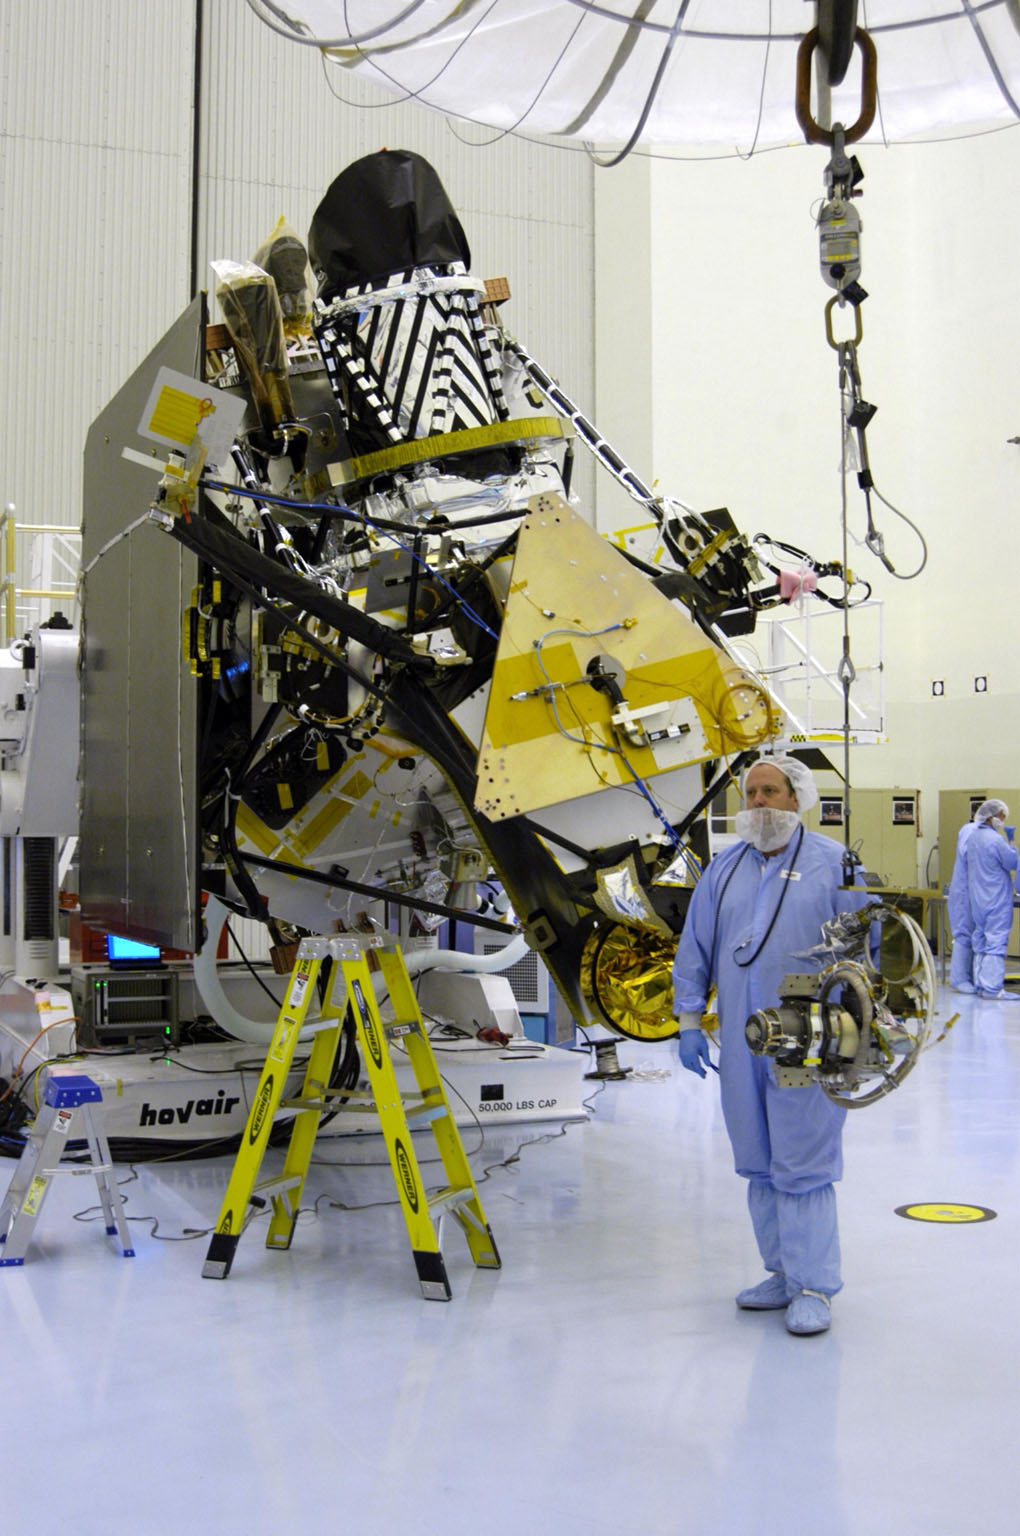 KENNEDY SPACE CENTER, FLA. - In the Payload Hazardous Servicing Facility at NASA?s Kennedy Space Center, a worker guides the gimbal across the floor to the Mars Reconnaissance Orbiter (MRO) in the background. The gimbal will be installed on the MRO solar panel. A gimbal is an appliance that allows an object to remain horizontal even as its support tips. In the PHSF, the spacecraft will undergo multiple mechanical assembly operations and electrical tests to verify its readiness for launch. A major deployment test will check out the spacecraft?s large solar arrays. The MRO was built by Lockheed Martin for NASA?s Jet Propulsion Laboratory in California. It is the next major step in Mars exploration and scheduled for launch from Cape Canaveral Air Force Station in a window opening Aug. 10. The MRO is an important next step in fulfilling NASA?s vision of space exploration and ultimately sending human explorers to Mars and beyond.